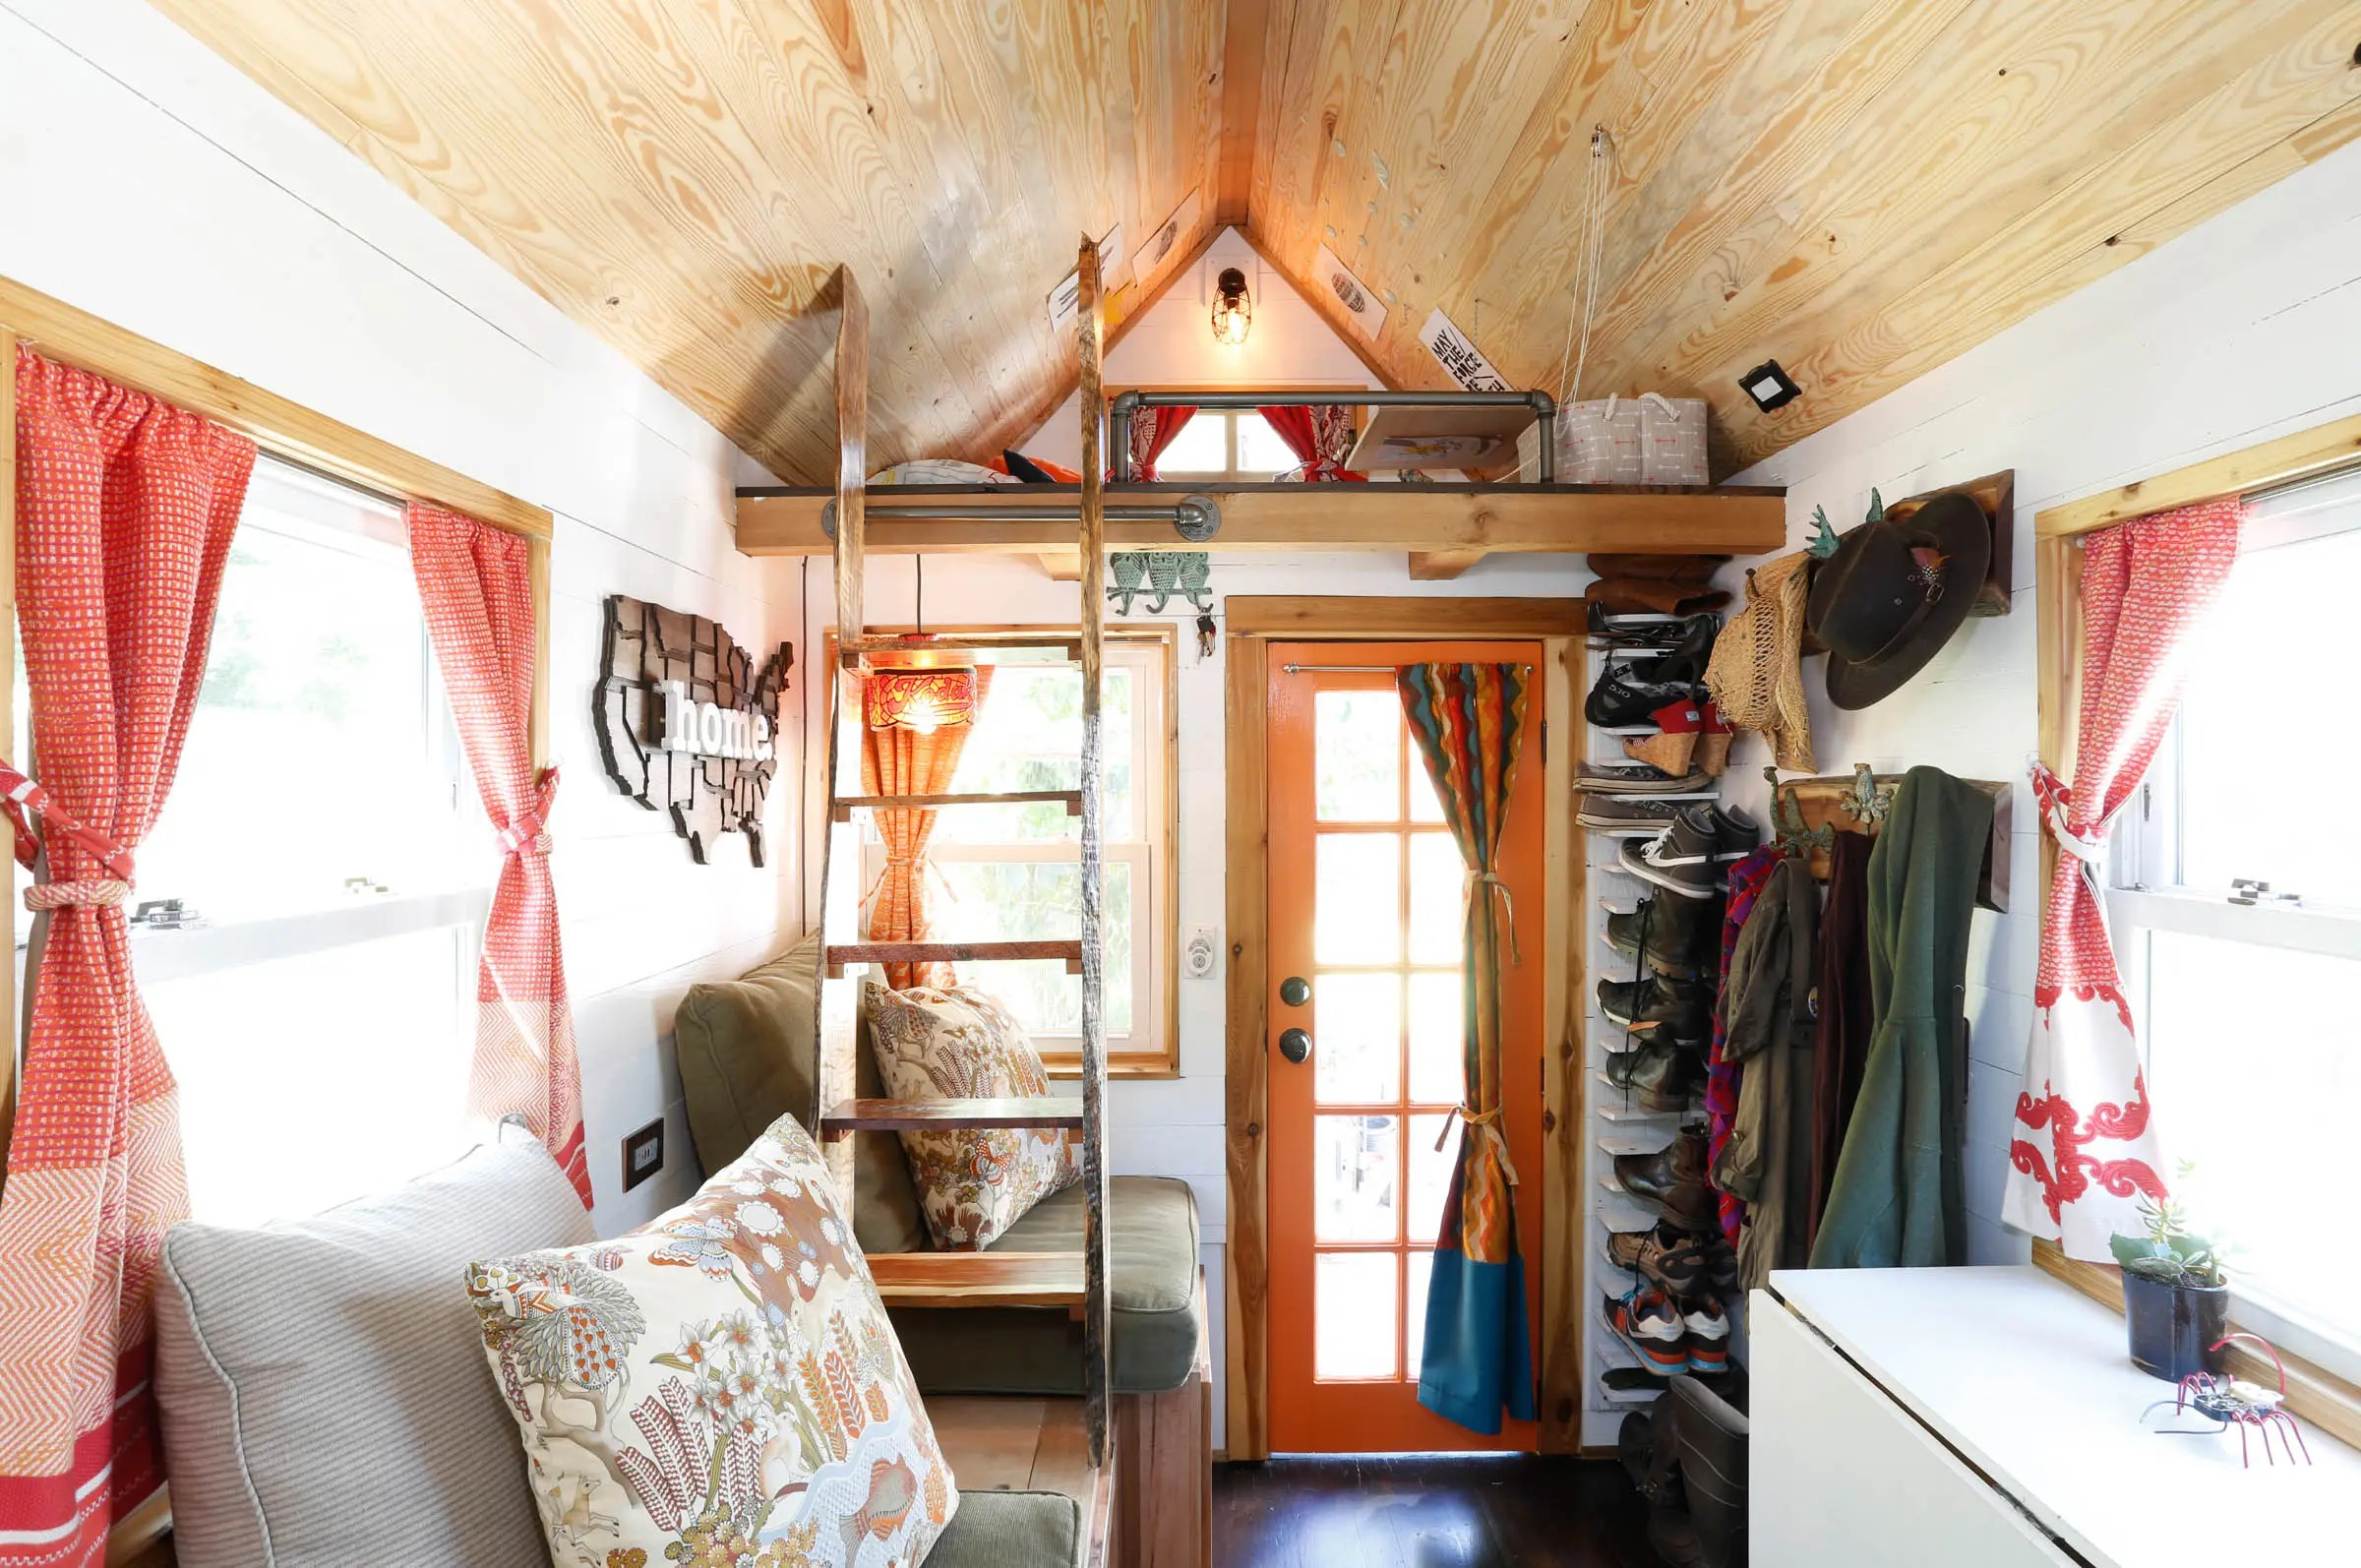 At 130 square feet, the house has a rustic cabin meets Pottery Barn catalog feel. It cost under $20,000 to build.